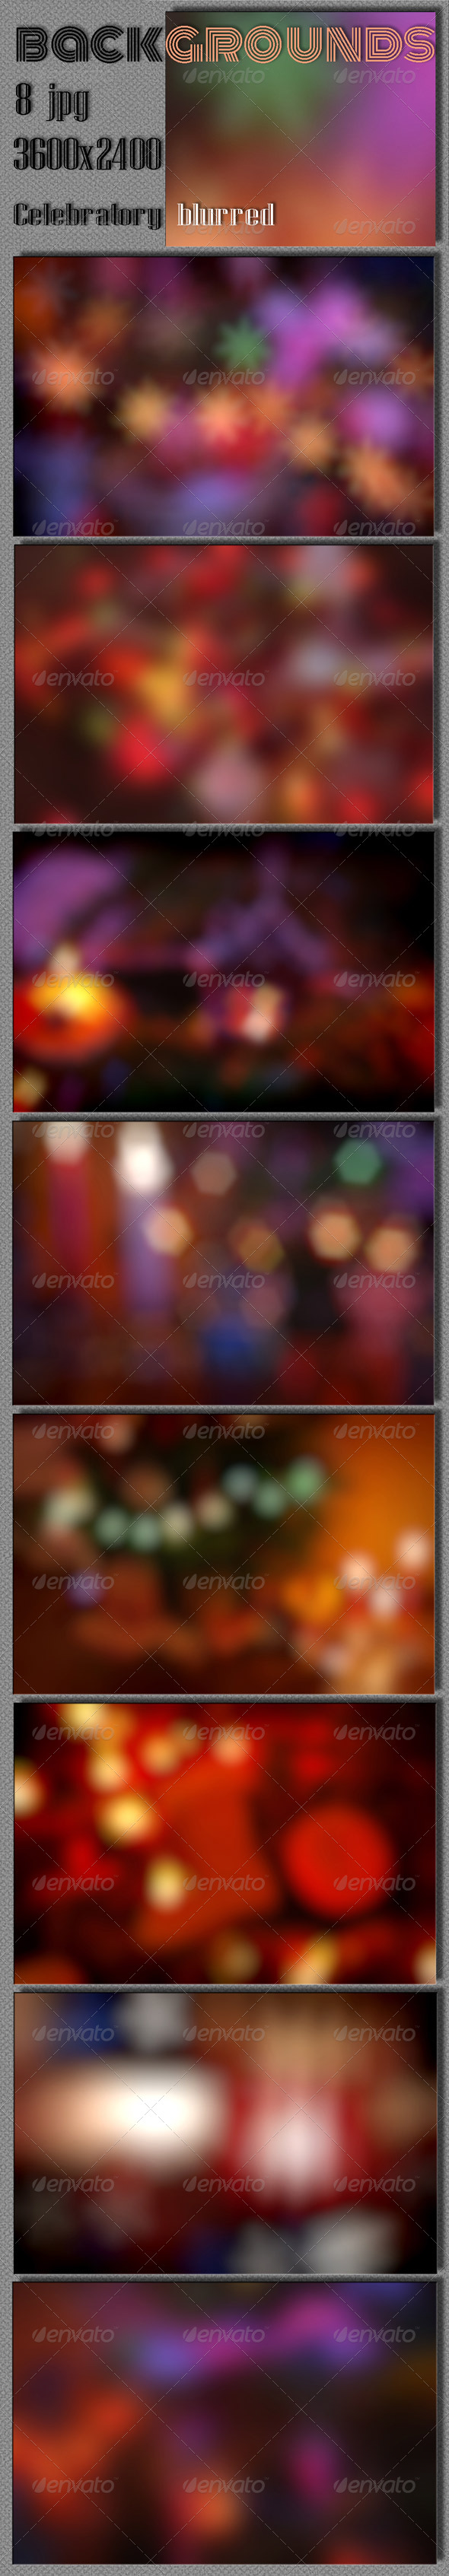 Celebrate Blurred Background - Miscellaneous Backgrounds